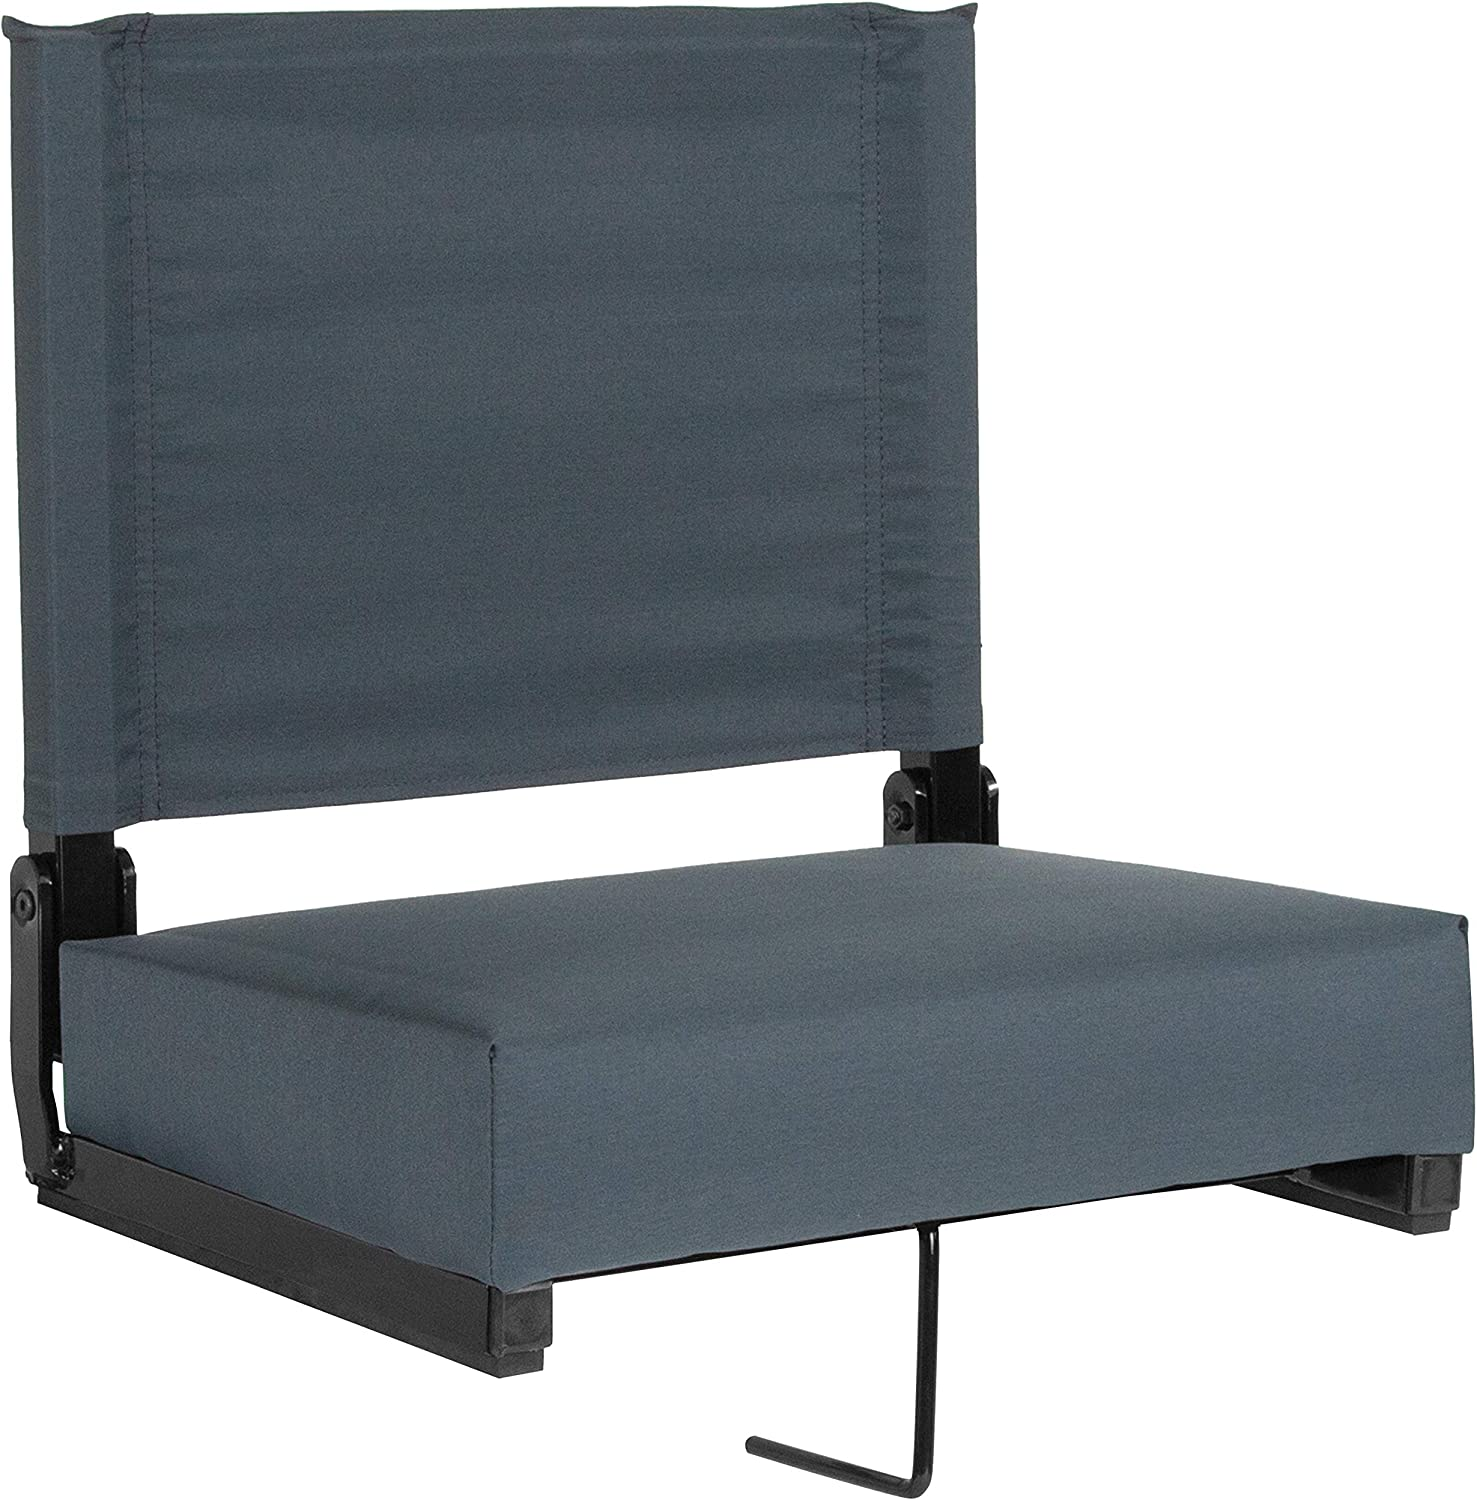 Flash Furniture Grandstand Comfort Seats by Flash with UltraPadded Seat in Dark bluee